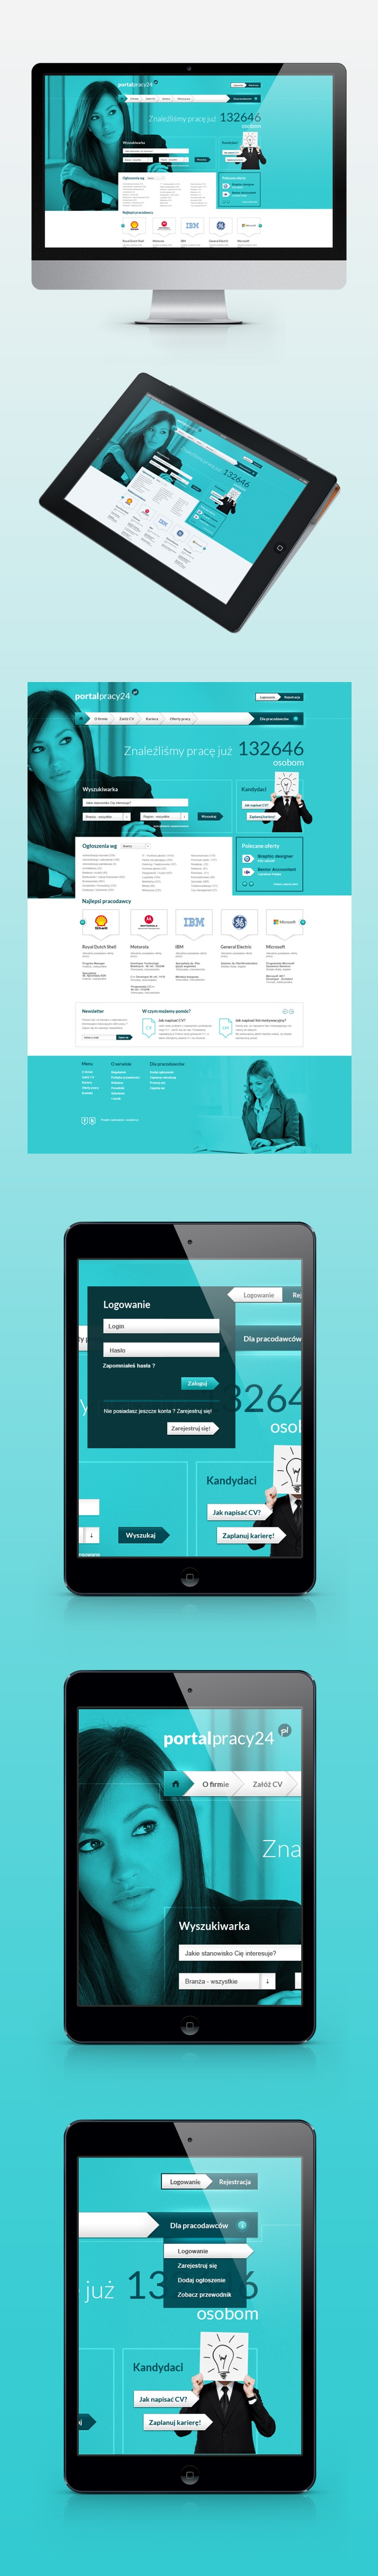 Portalpracy24.pl - Job Portal by Adam Rozmus, via Behance